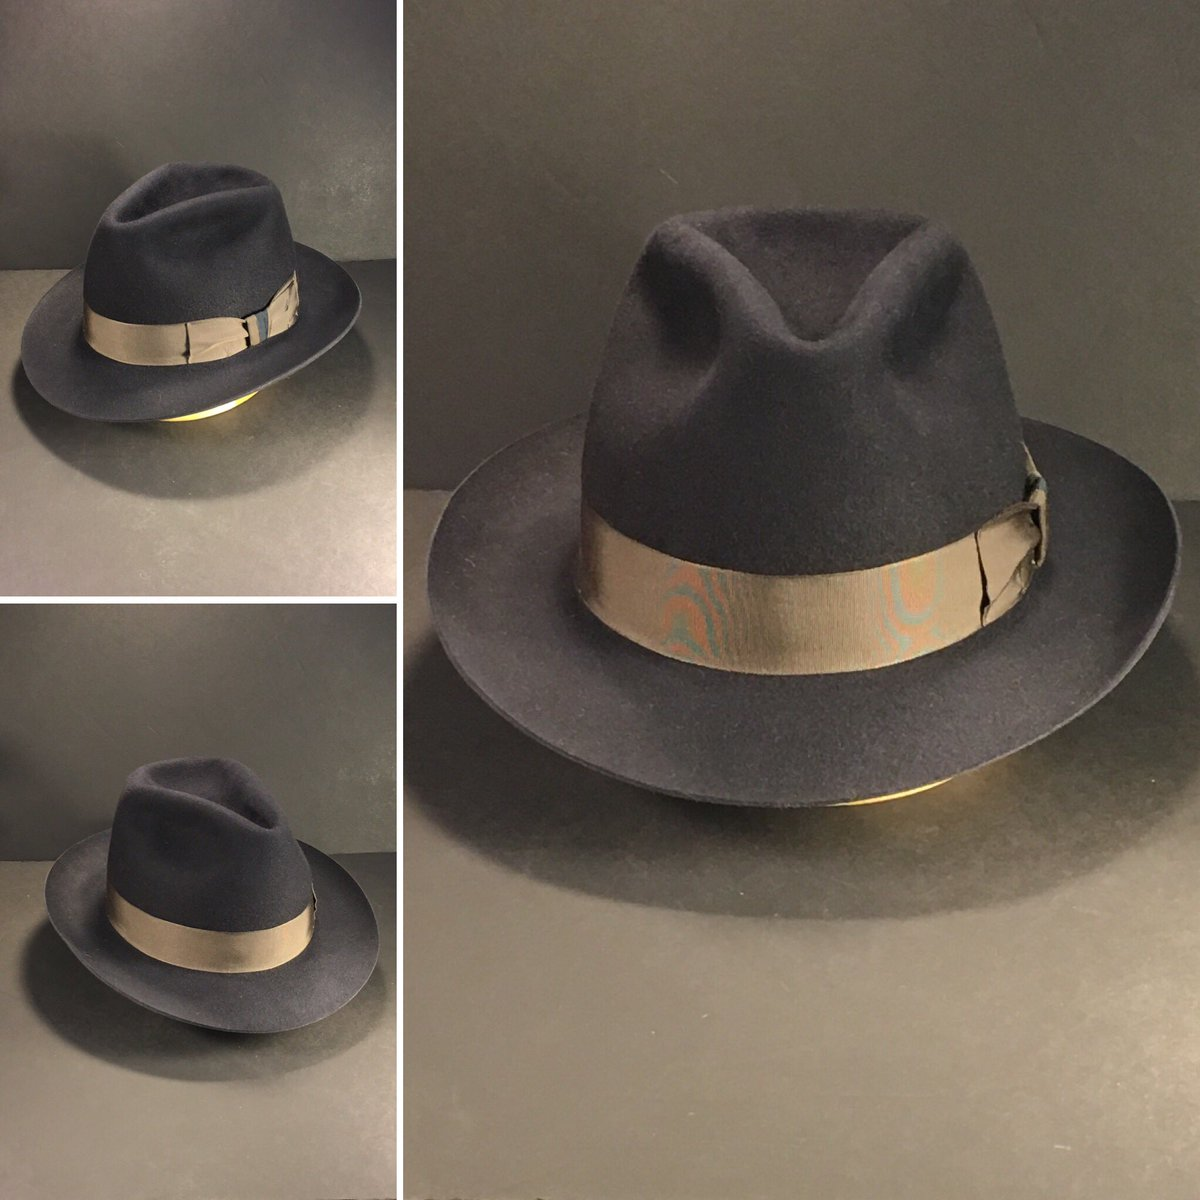 18a3c6d02 Penman Hat Company @Penmanhats Timeline, The Visualized Twitter ...